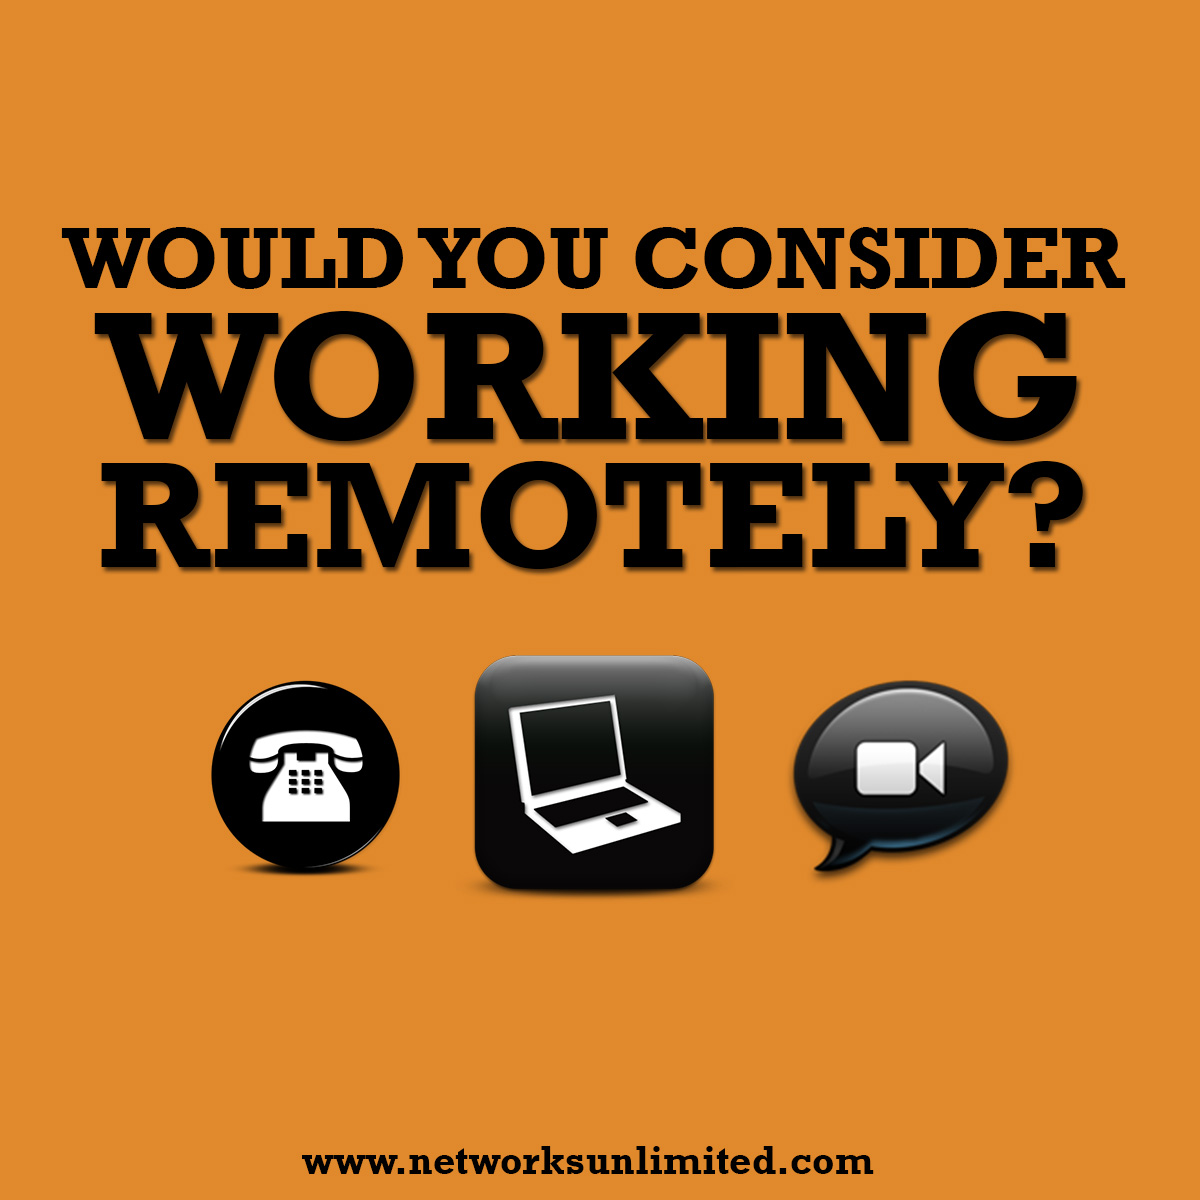 working remotely?